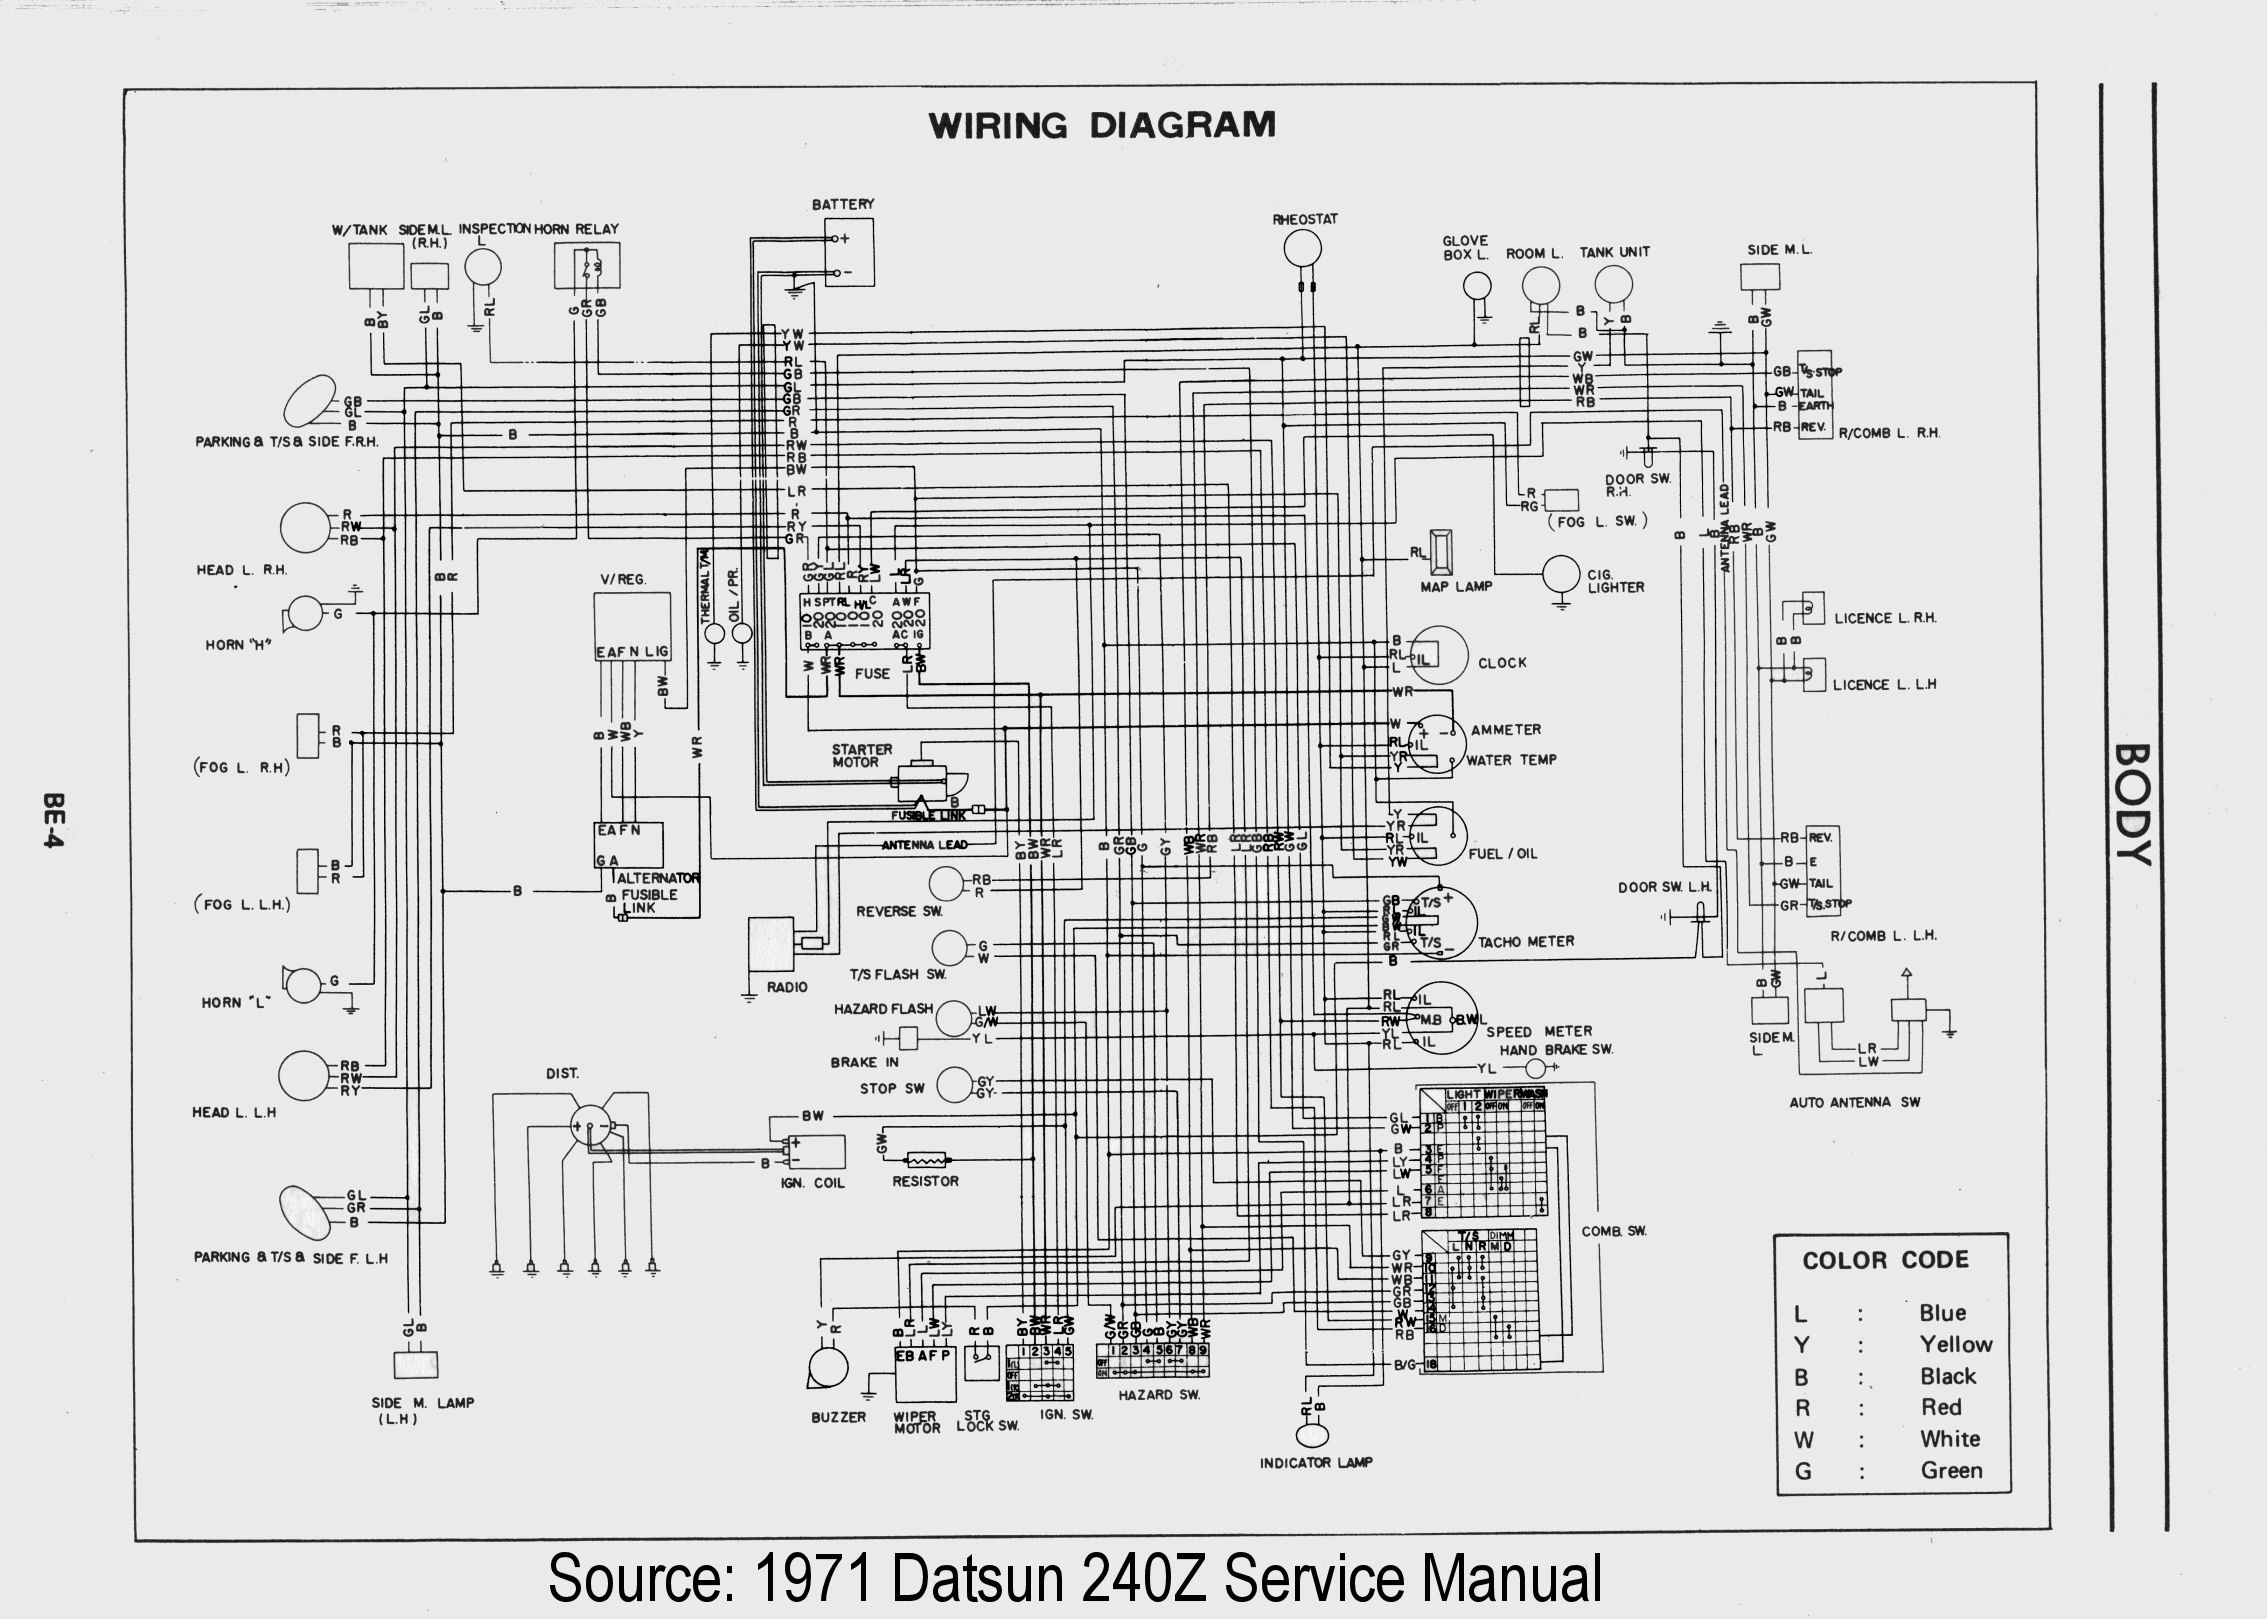 1990 Nissan 300zx Engine Wiring Diagram Data Mustang Fuse Schematic 90 2003 Chevrolet Cavalier